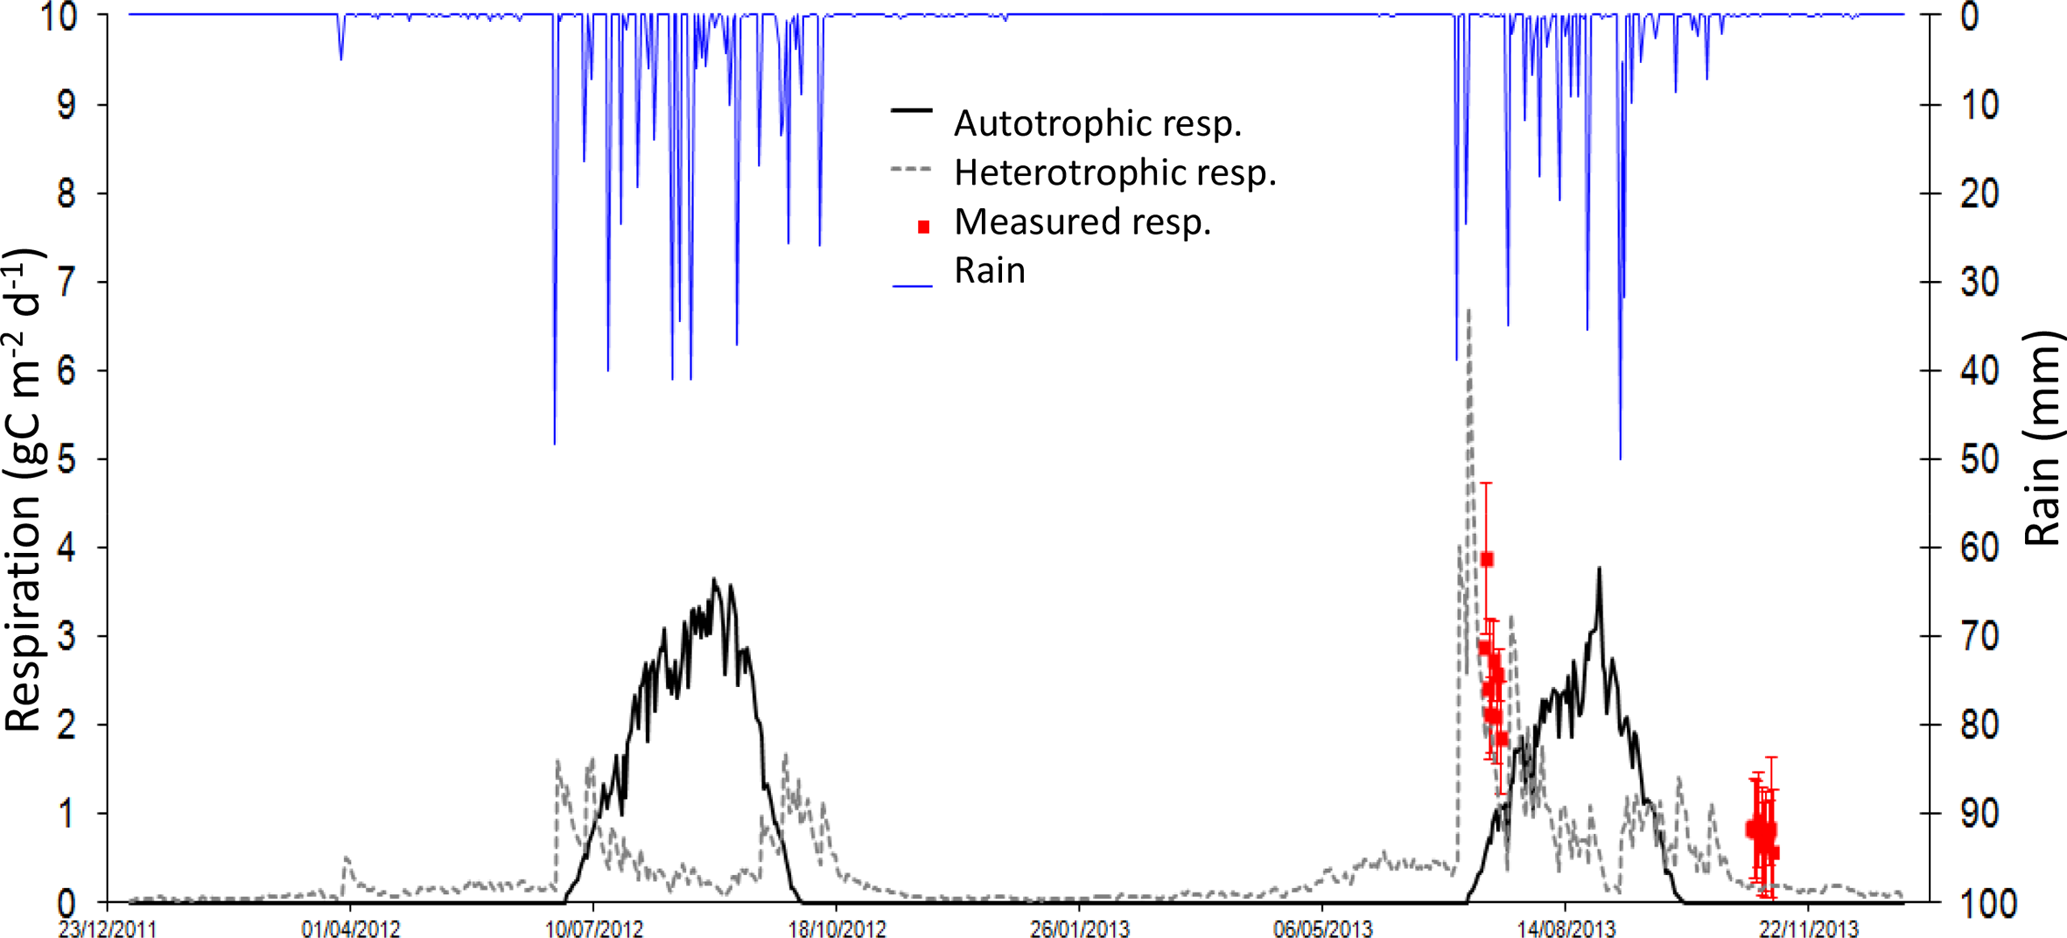 BG - Modelling land–atmosphere daily exchanges of NO, NH3, and CO2